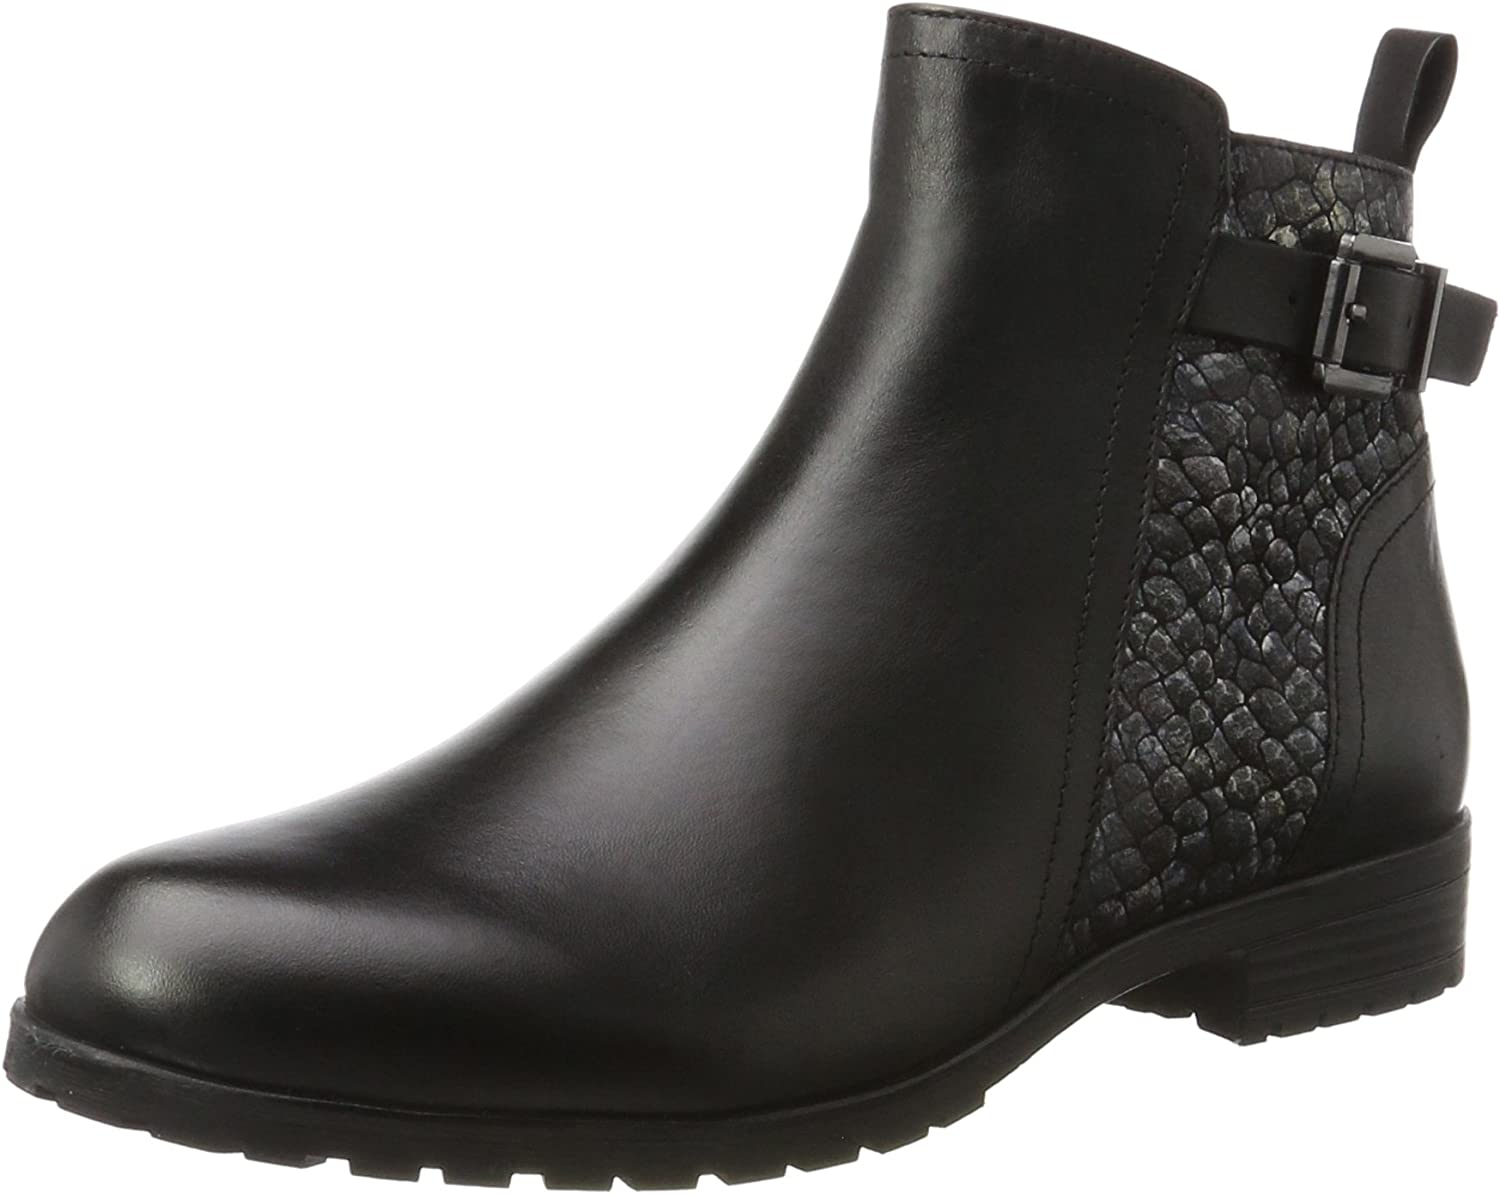 Caprice Buckle Chelsea Boot Womens Ankle Boots